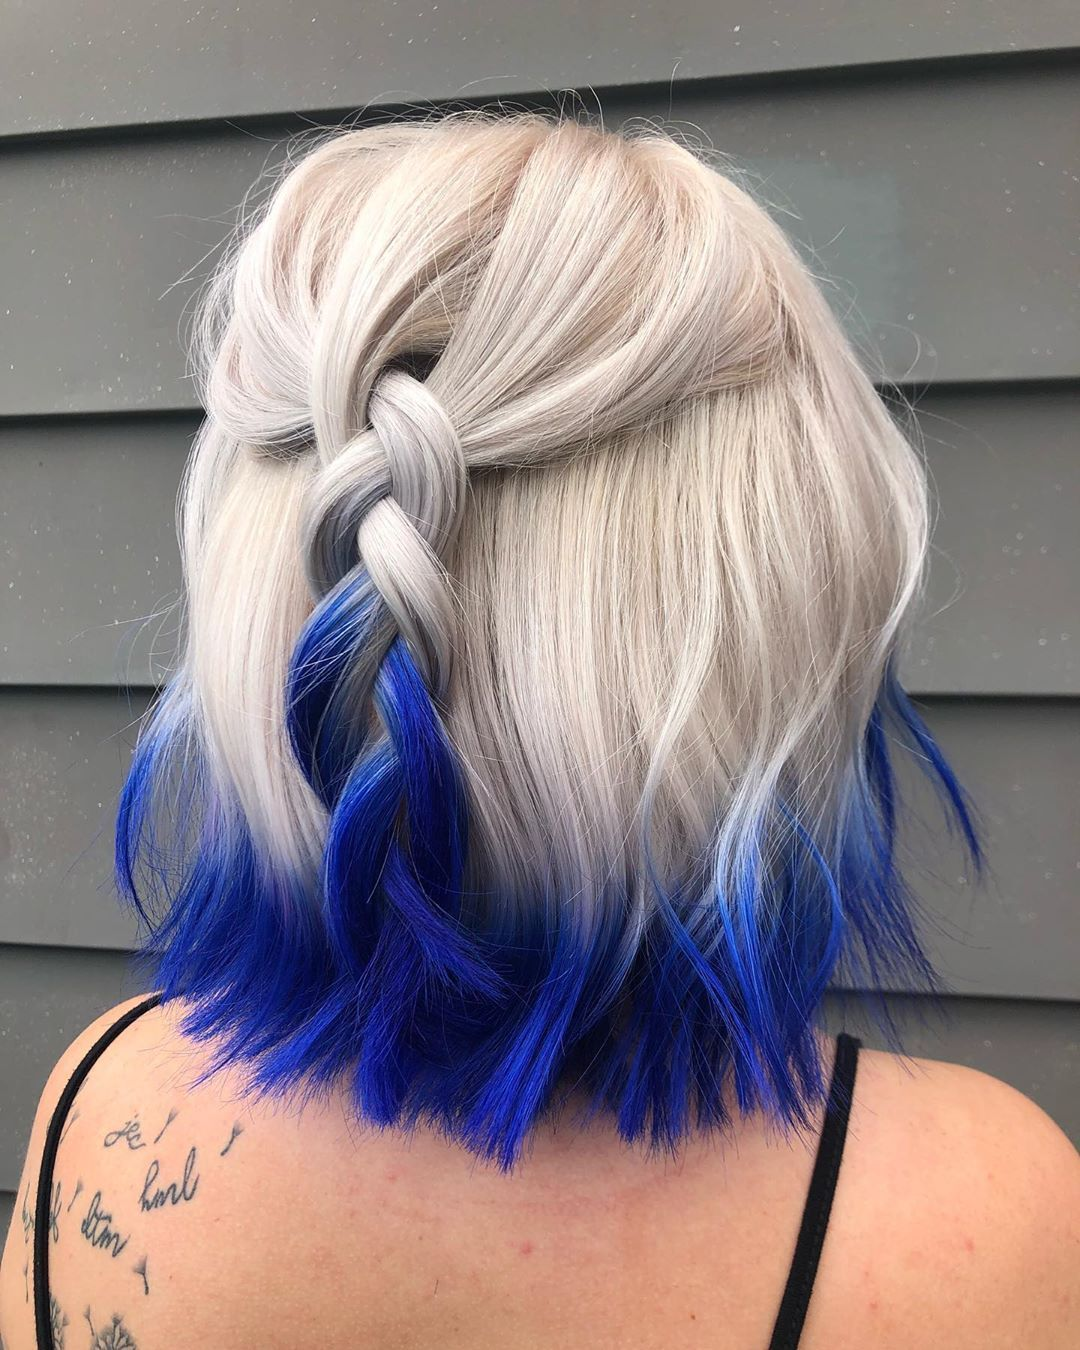 Arctic Fox Hair Color Veronicaanowak Just The Tips I Love Doing This Kind O In 2020 Hair Styles Hair Dye Colors Arctic Fox Hair Color